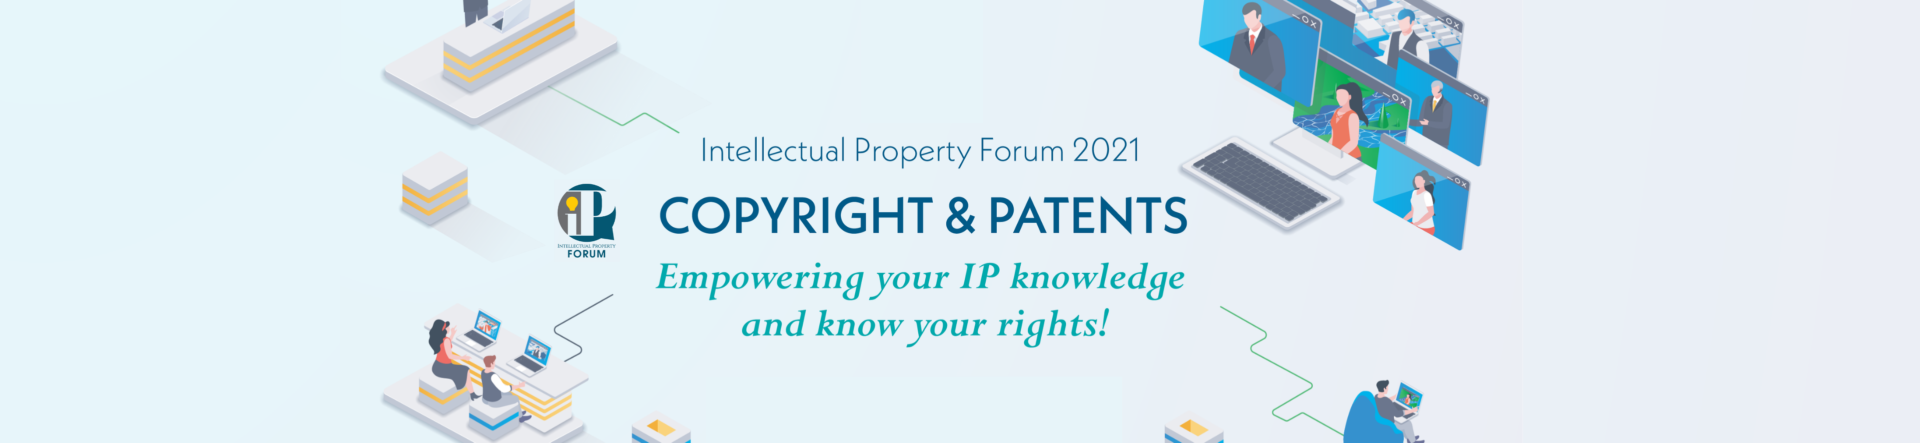 Intellectual Property Forum 2021